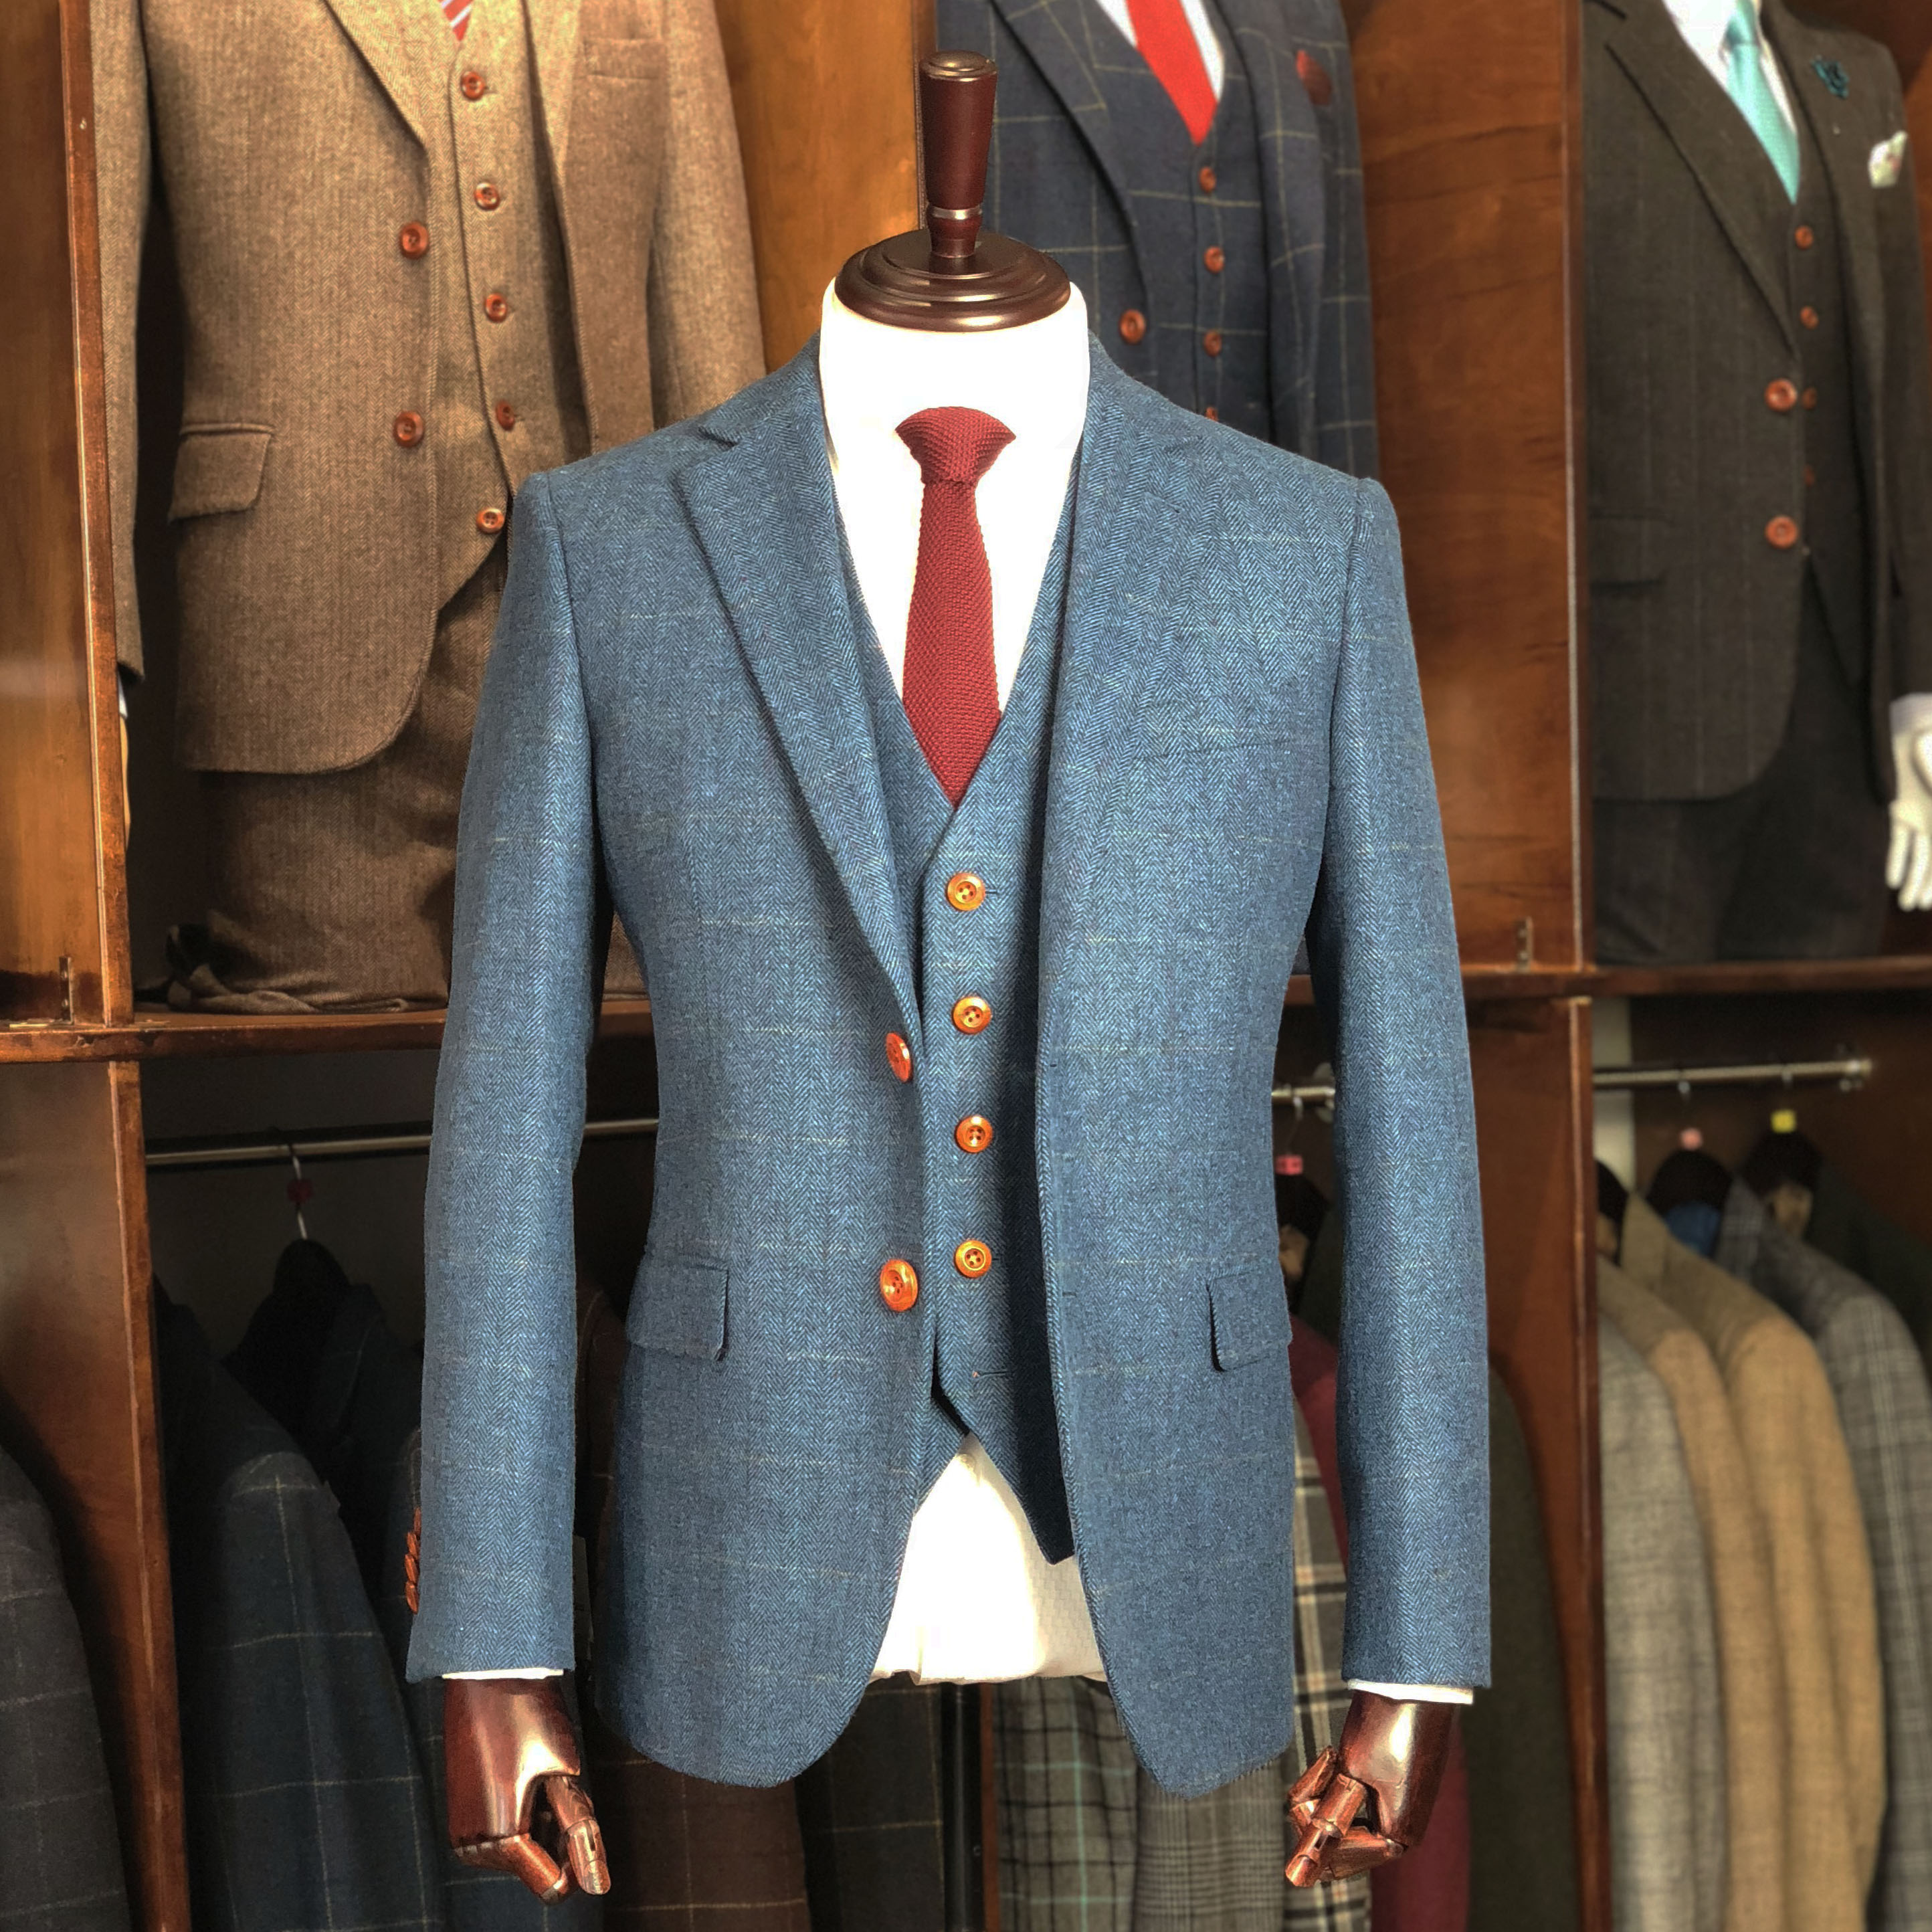 Tweed Suits | Men\'s Quality British Tweed Suit For The Modern Man